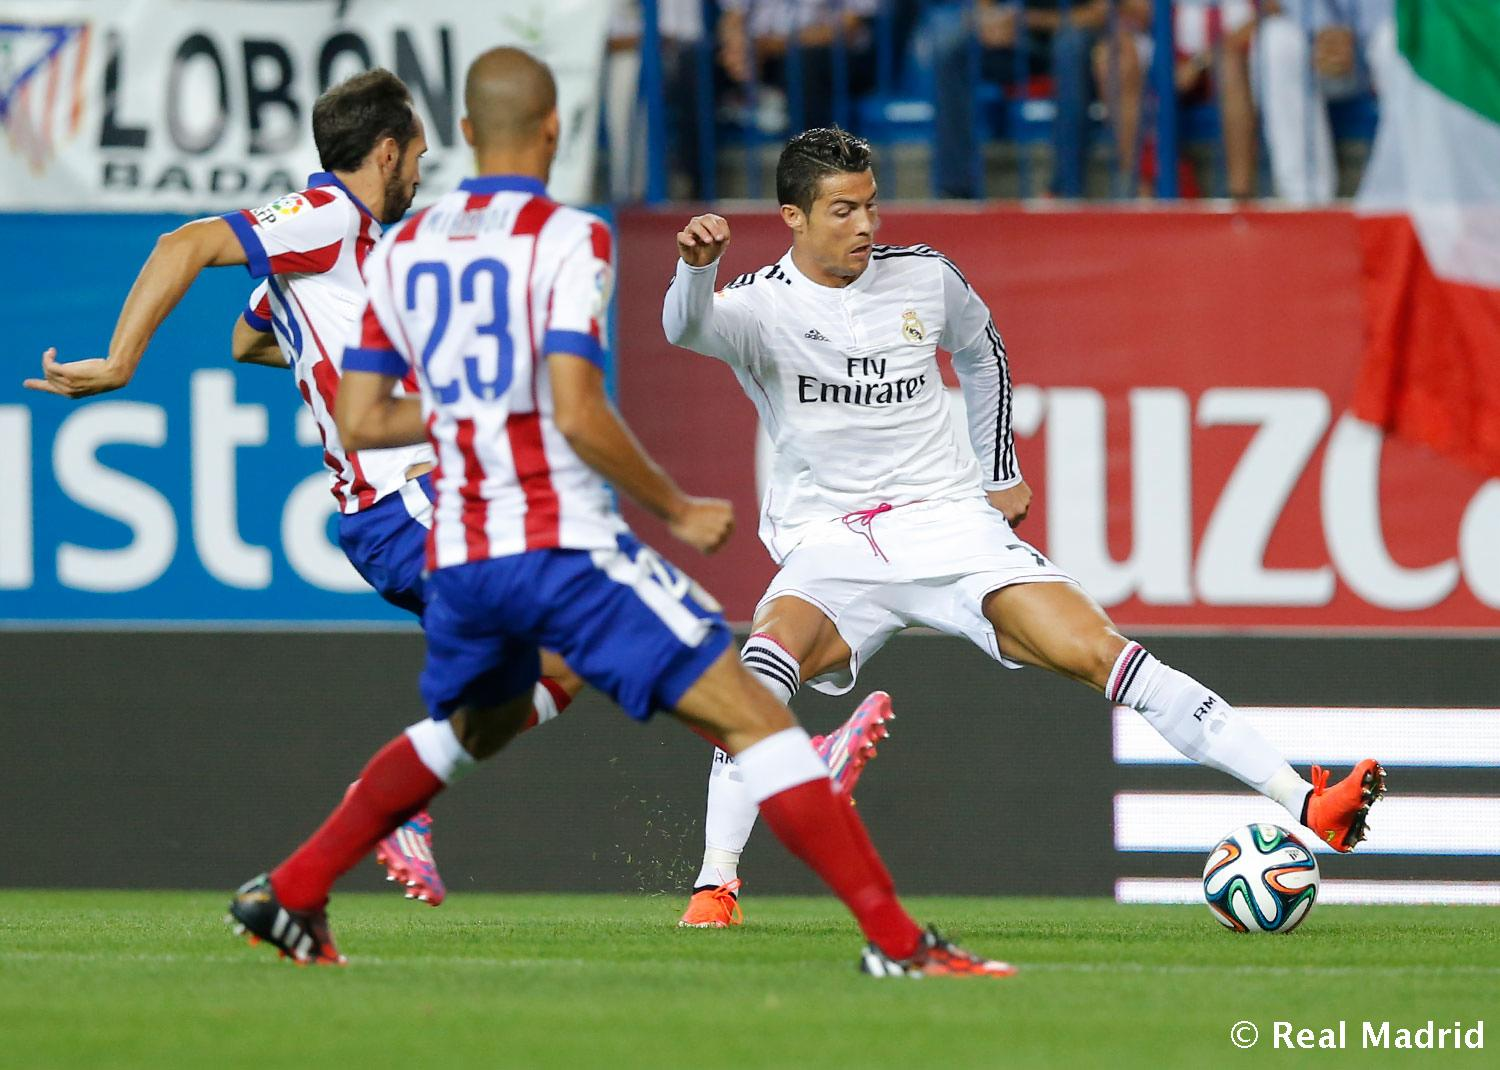 Real Madrid - Atlético de Madrid - Real Madrid - 22-08-2014